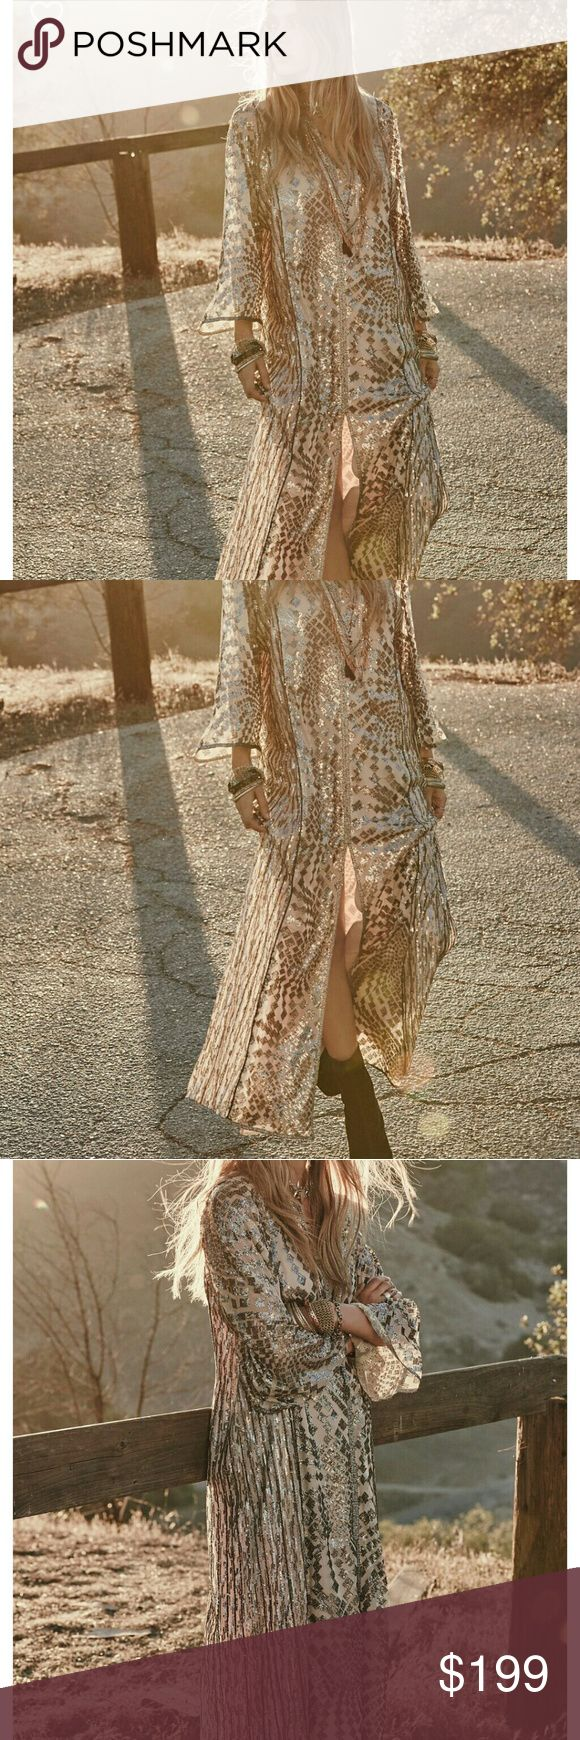 Anna Sui silver maxi dress American made embroidered maxi, adorned with silver sequins that catch the light at each turn. Wide, sheer sleeves,  fully lined.  Dry clean. Bust 20 inches, lenght 54 inches, sleeves length 21 inches. NWOT! Best fit 6/8. Free People Dresses Maxi